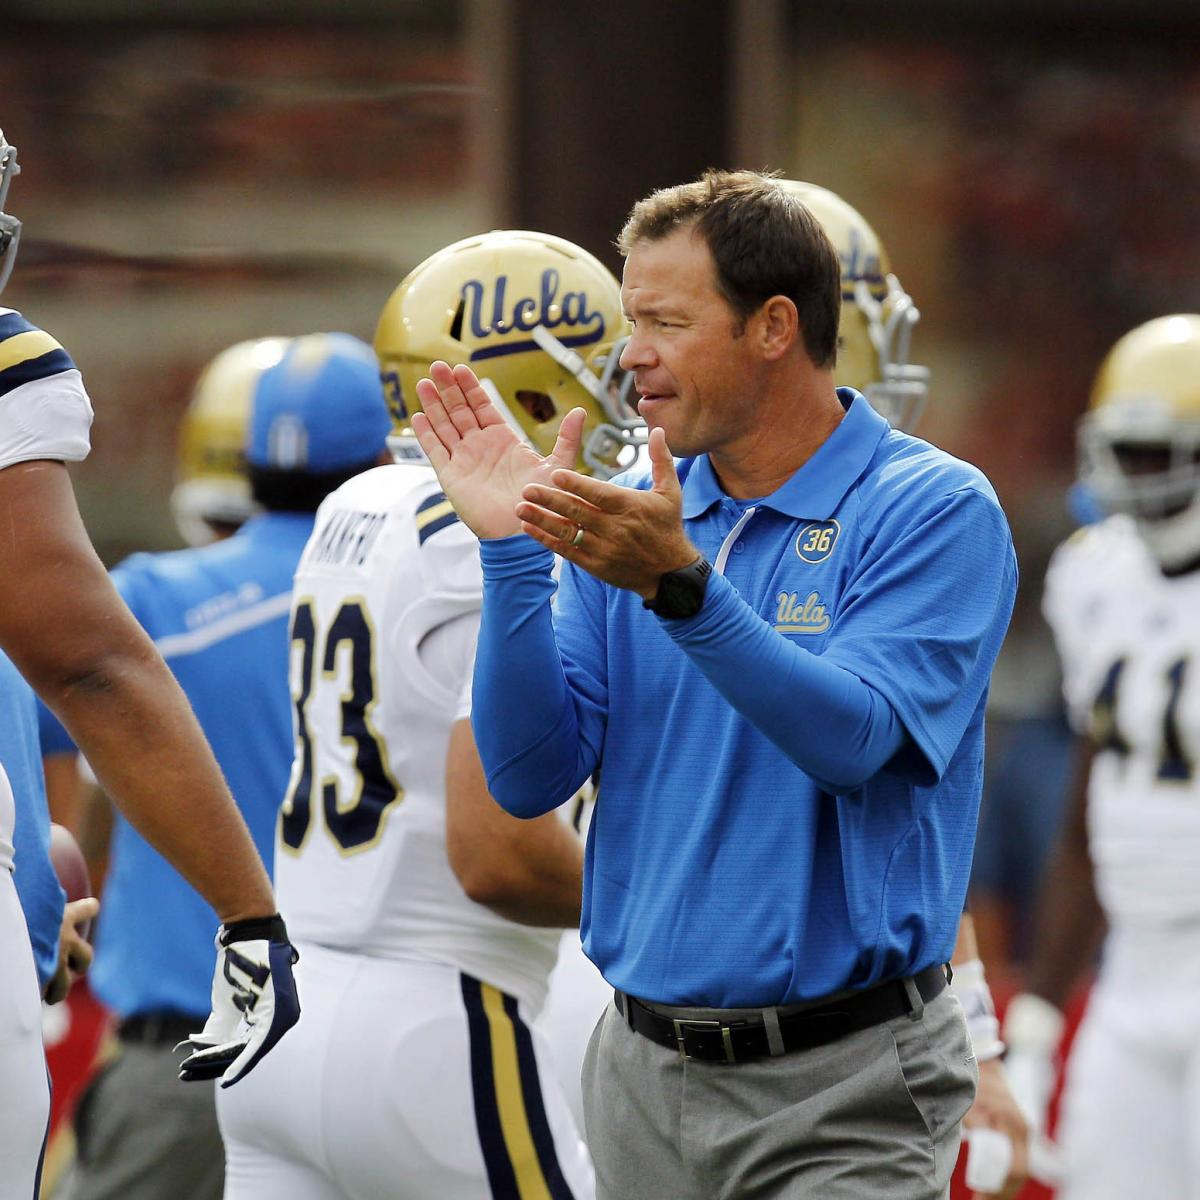 UCLA Football: Best and Worst Case Scenarios for Bruins ...Bruins Bleacher Report